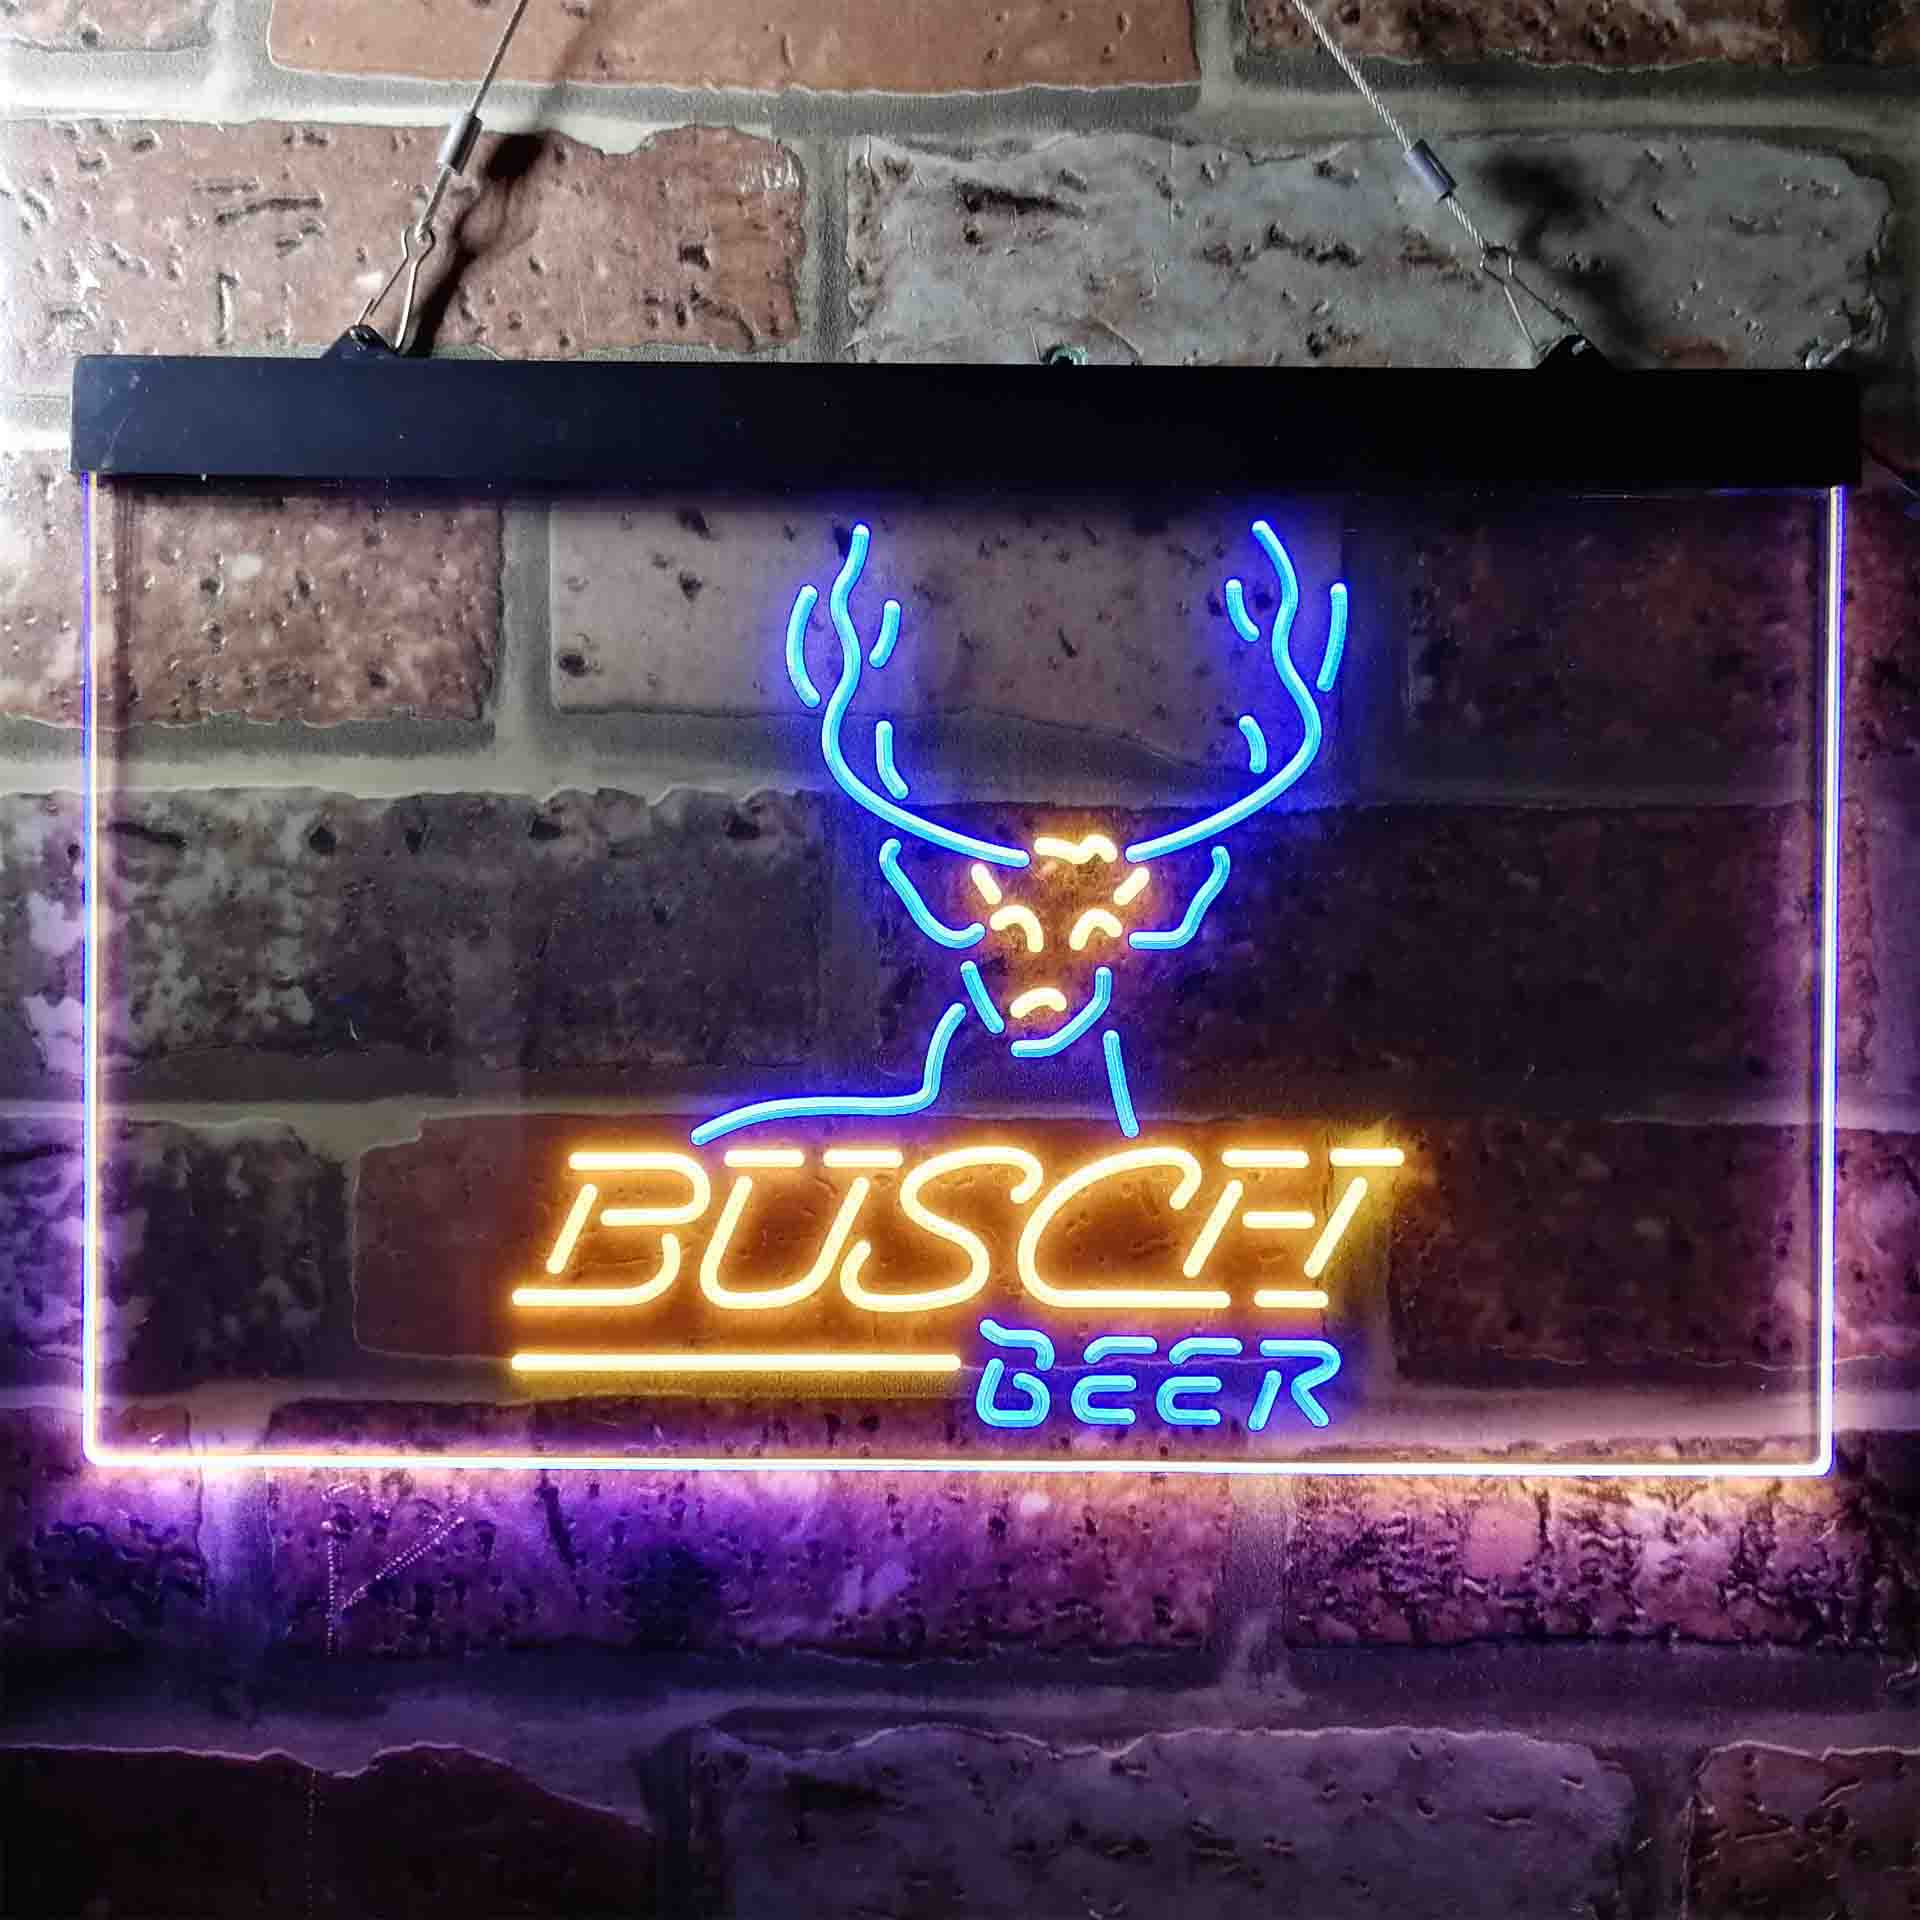 Busch Beer Cabin Deer Hunt Neon-Like LED Sign